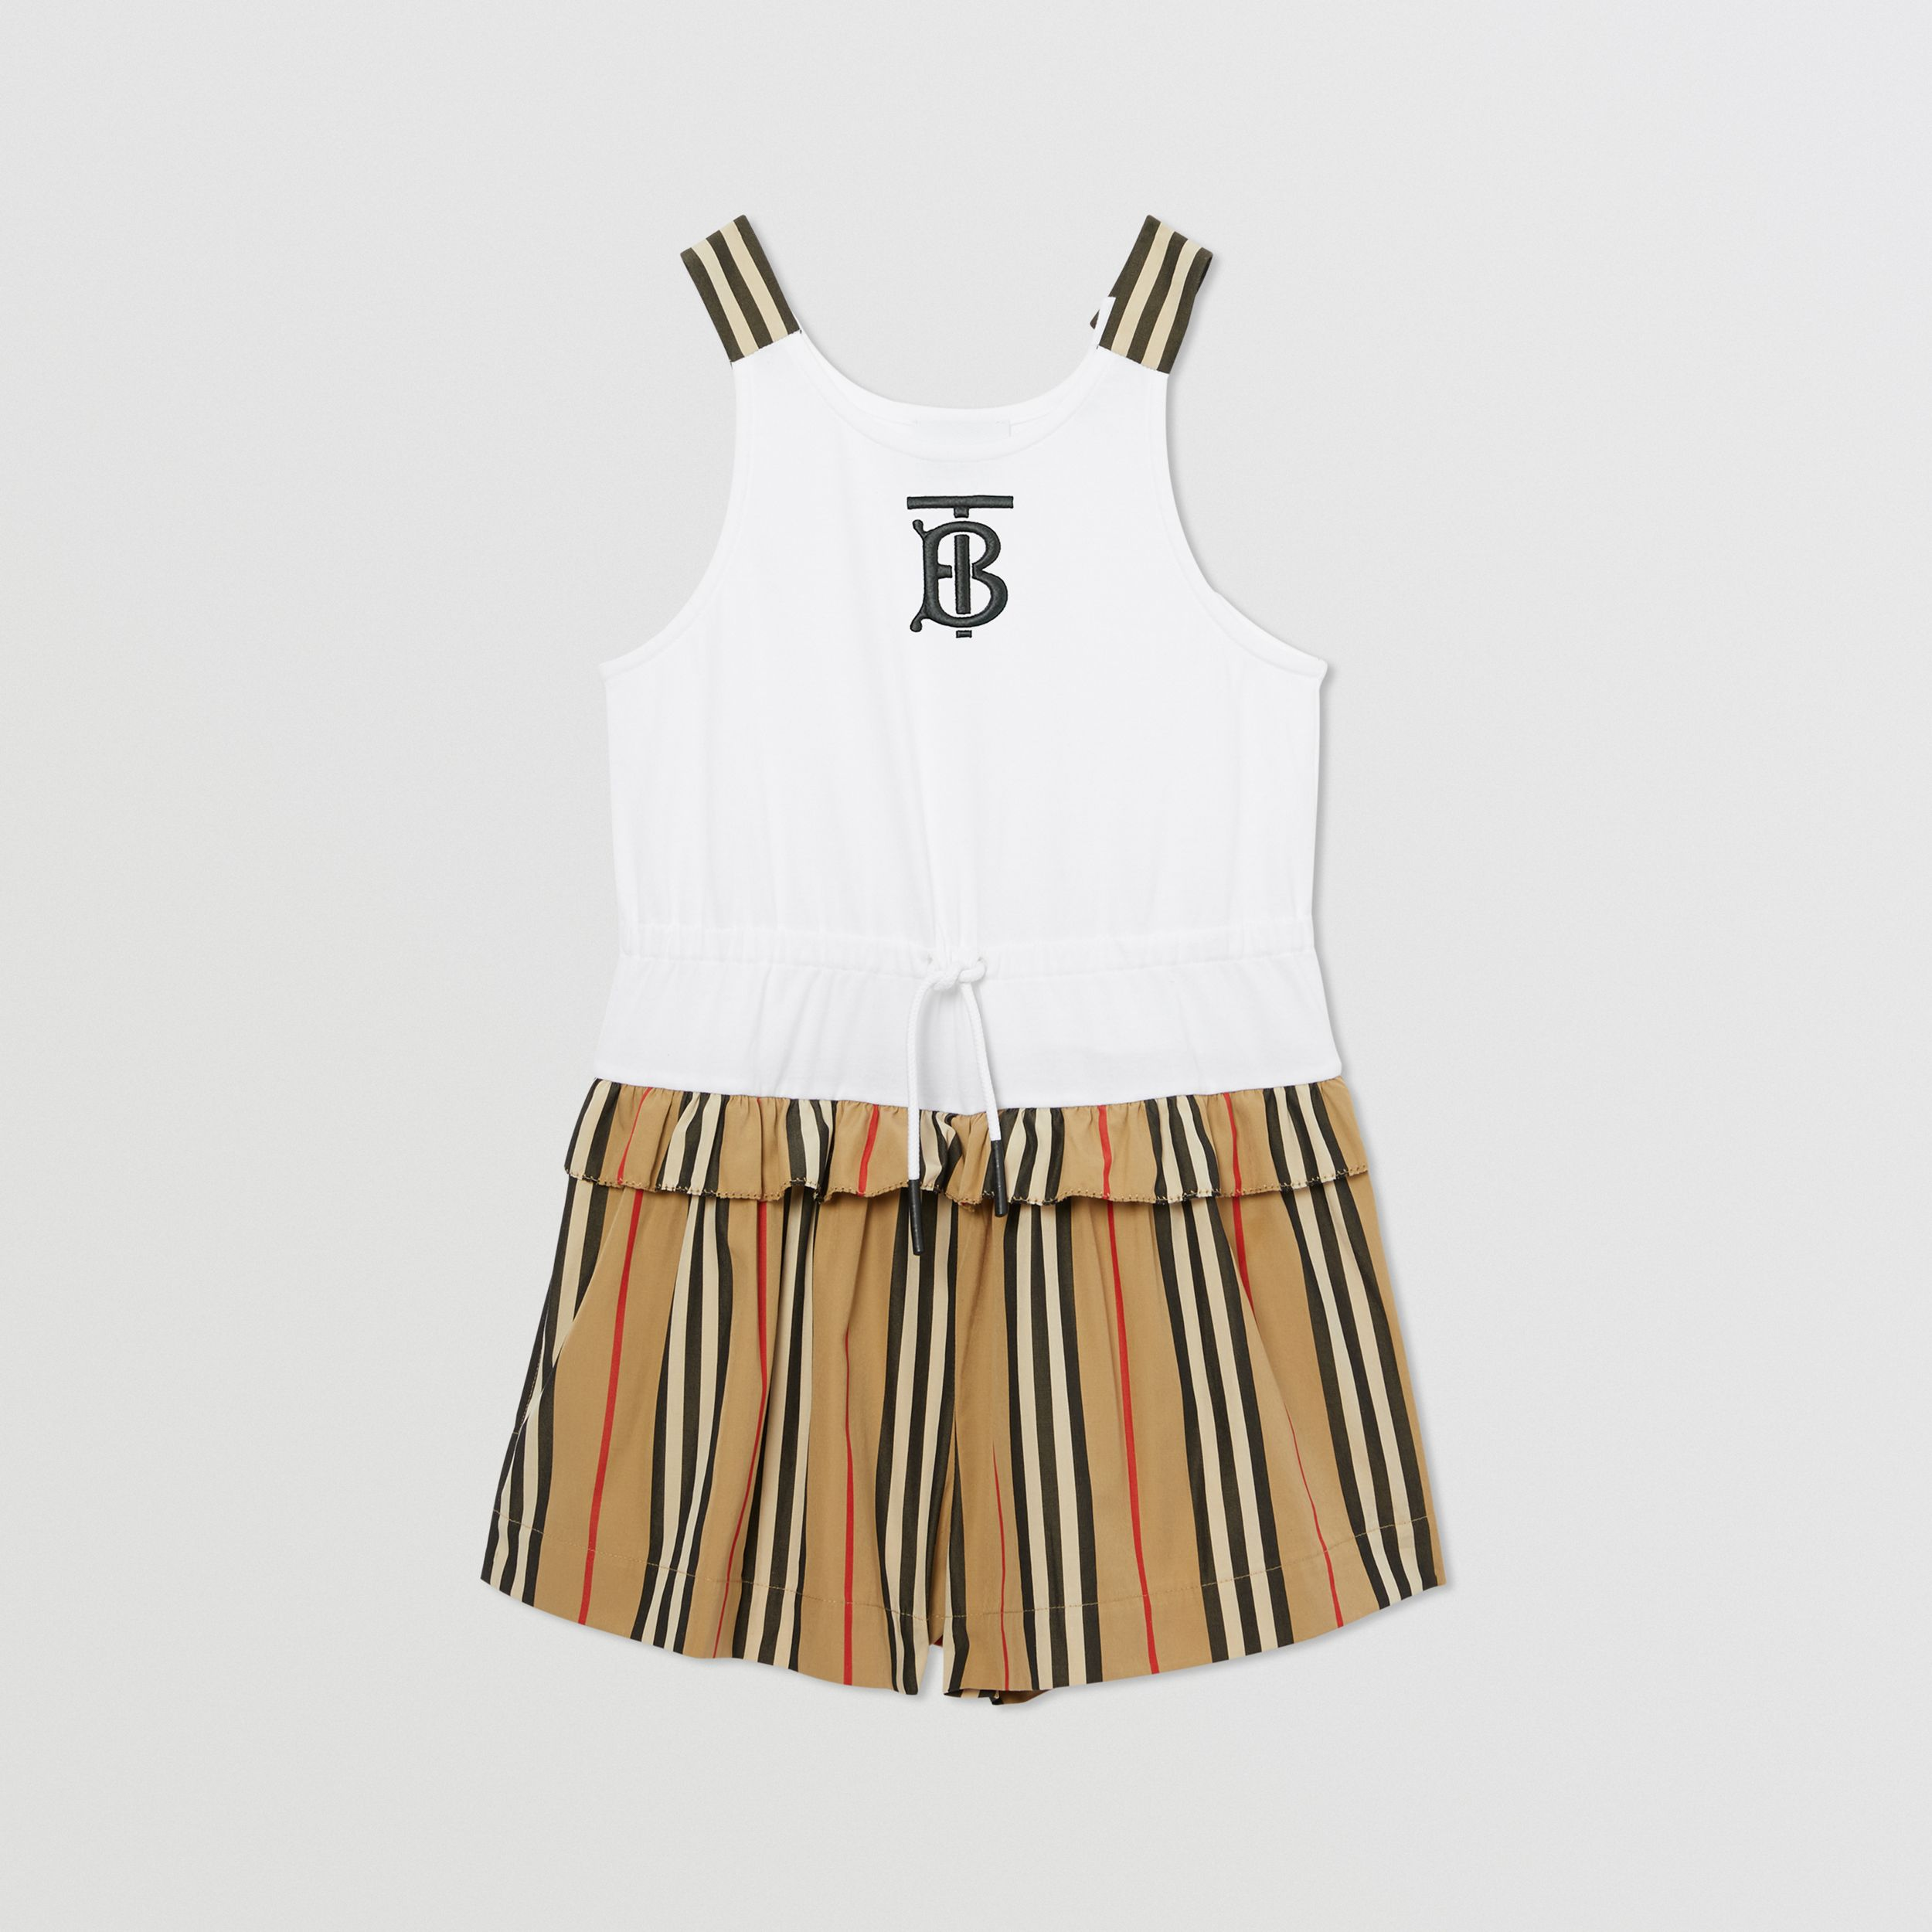 Monogram Motif Icon Stripe Detail Cotton Playsuit in Archive Beige | Burberry United Kingdom - 1